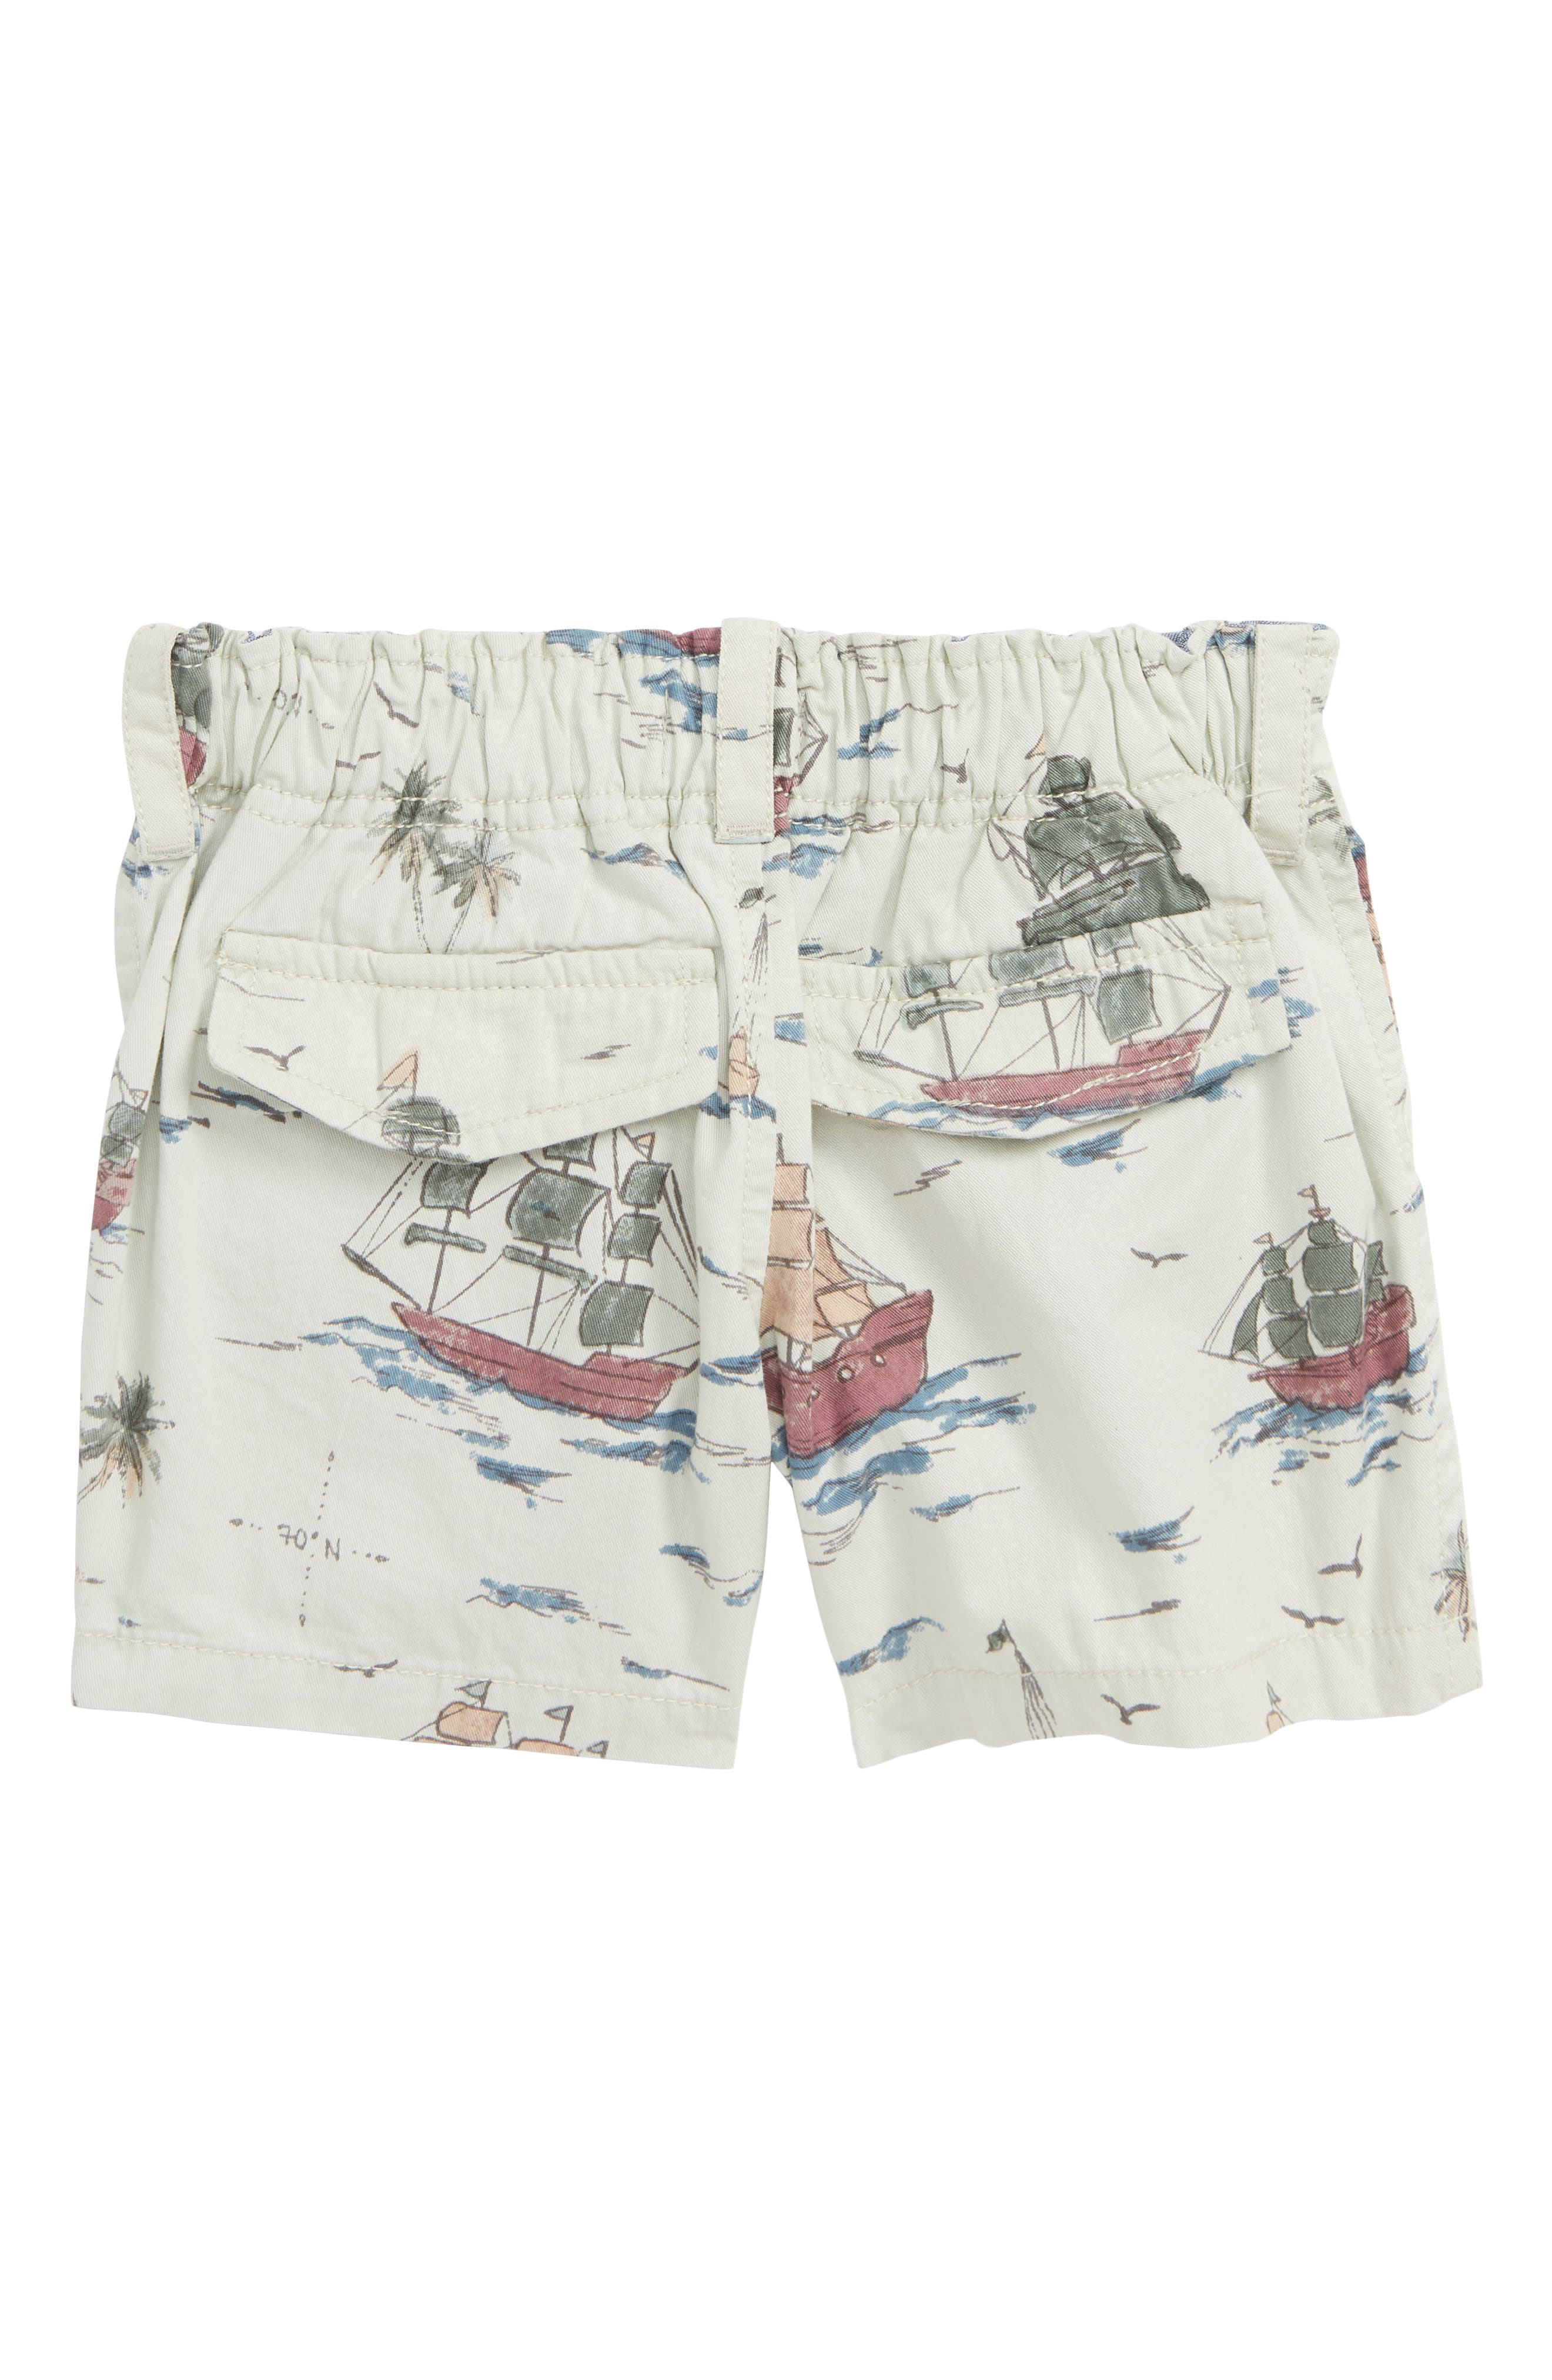 PEEK ESSENTIALS, Pirate Ship Shorts, Alternate thumbnail 2, color, KHAKI